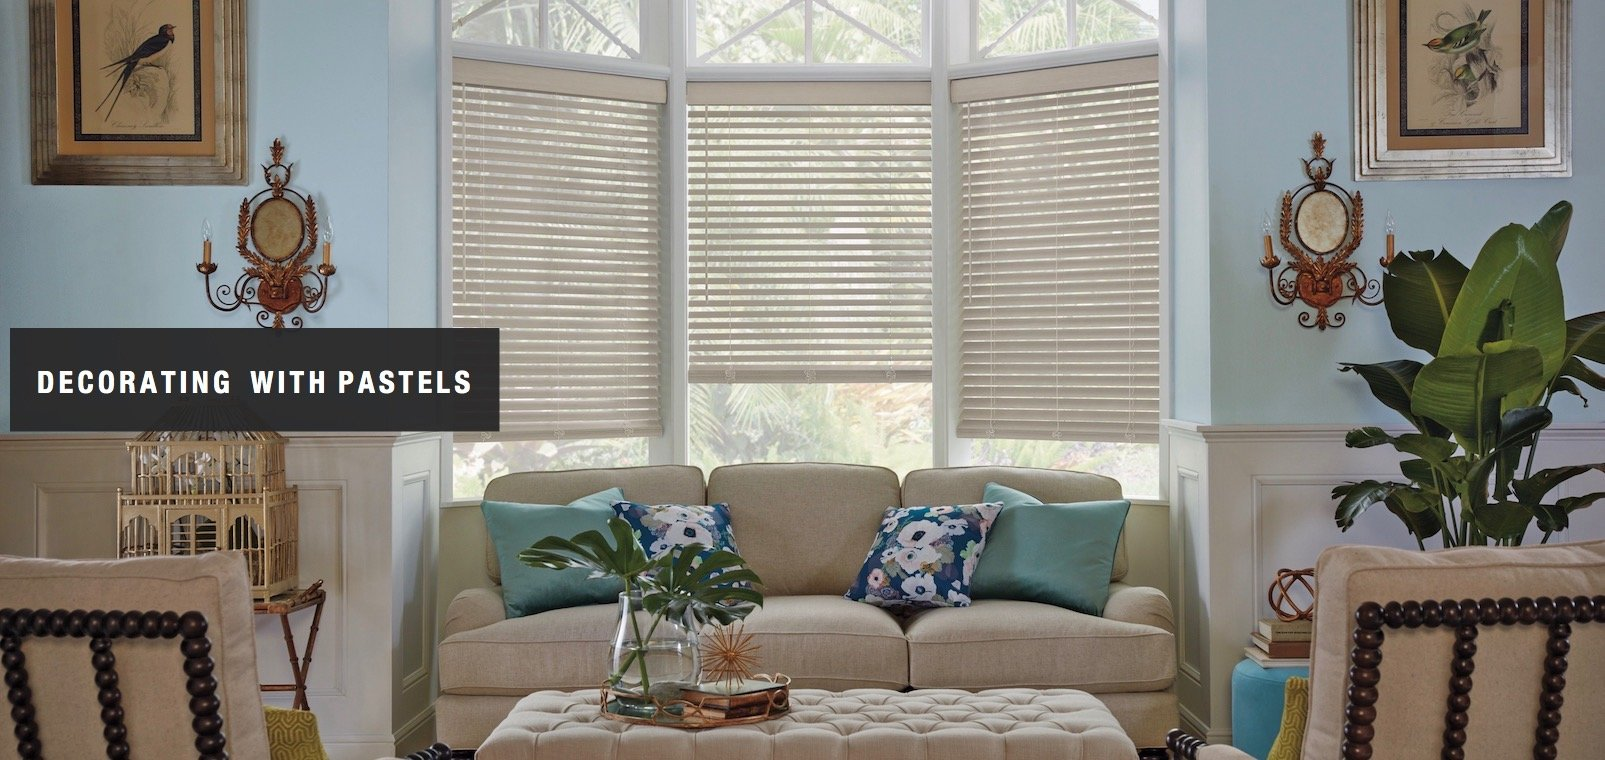 Compatible Window Treatments With Pastel Home Decor